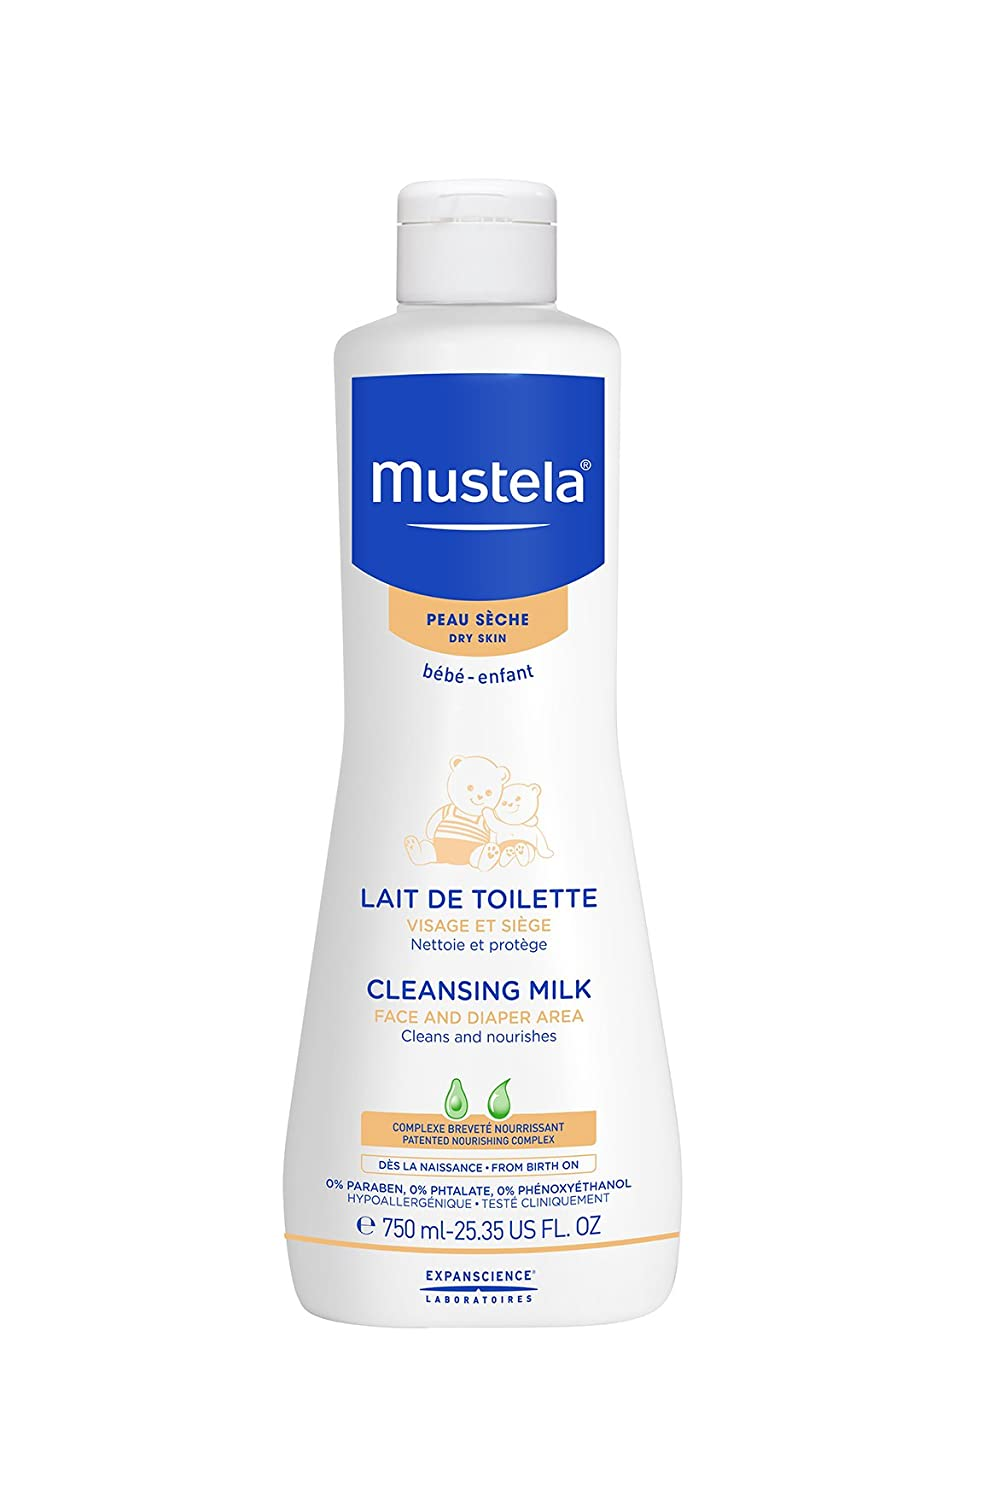 Mustela Face and Diaper Area Cleansing Milk 750ml EXPAN3504105028657